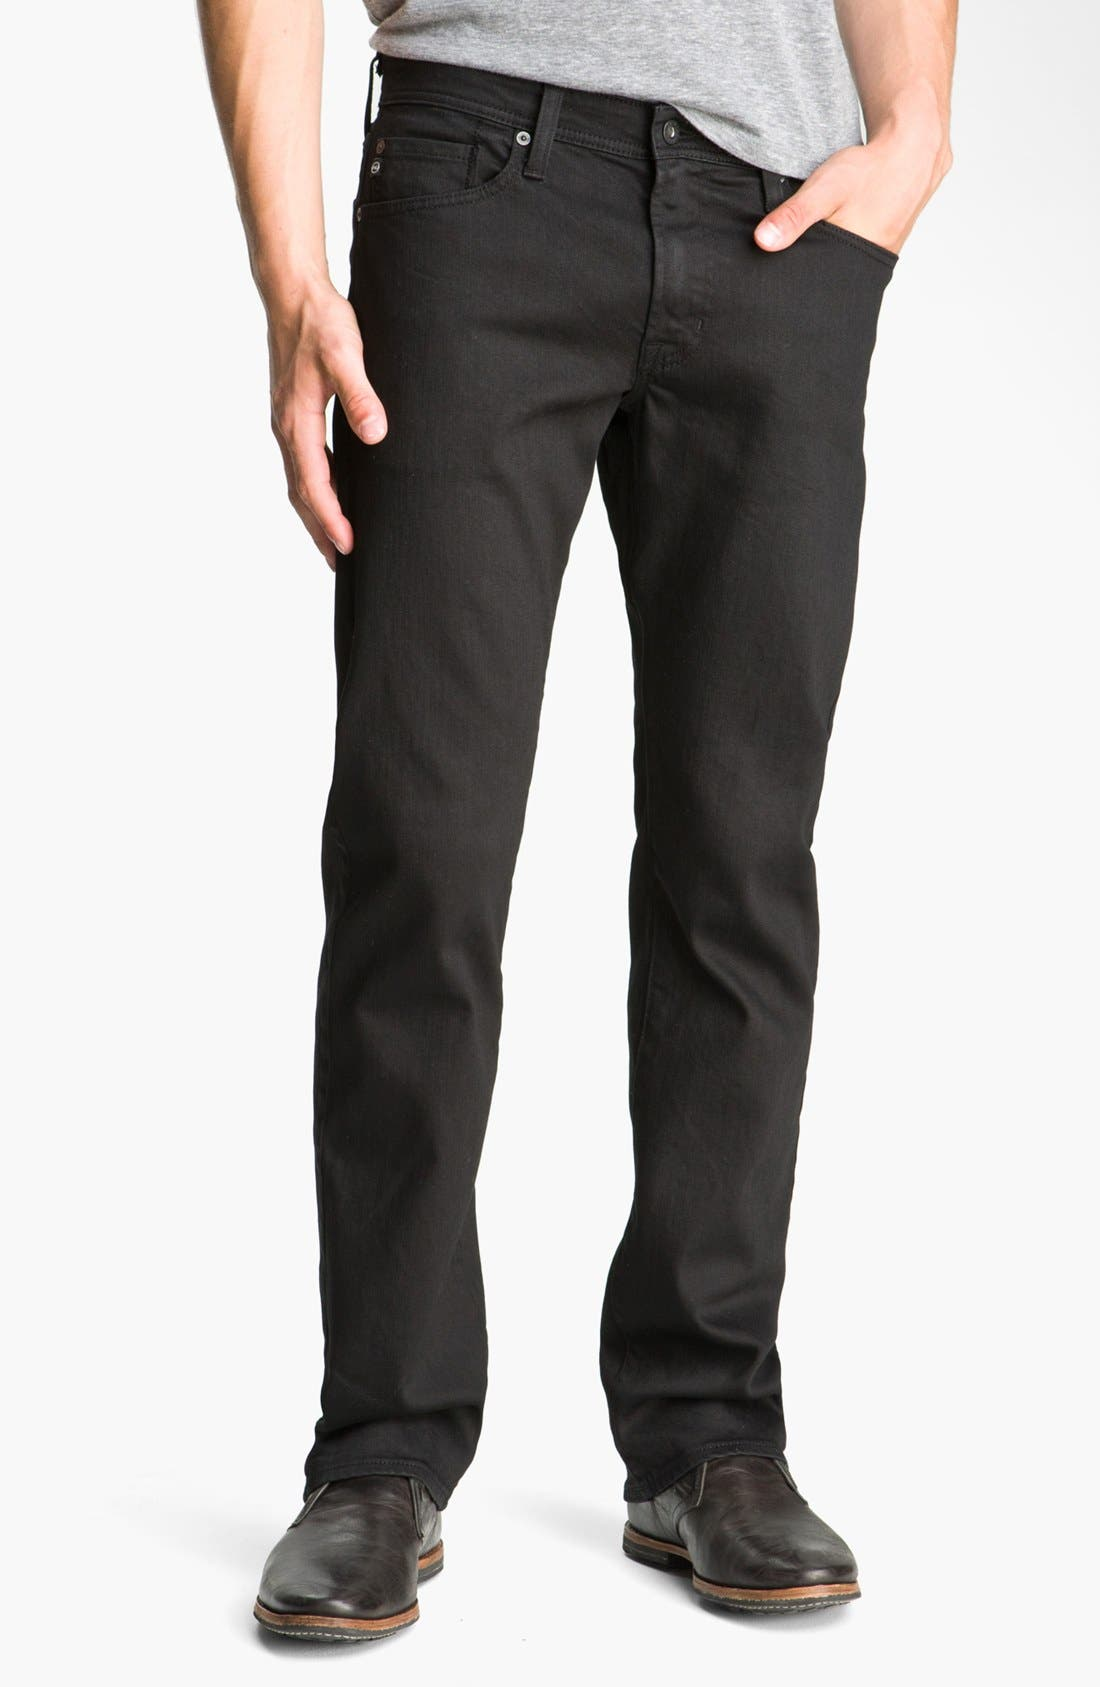 'Protégé' Straight Leg Jeans,                         Main,                         color, 002